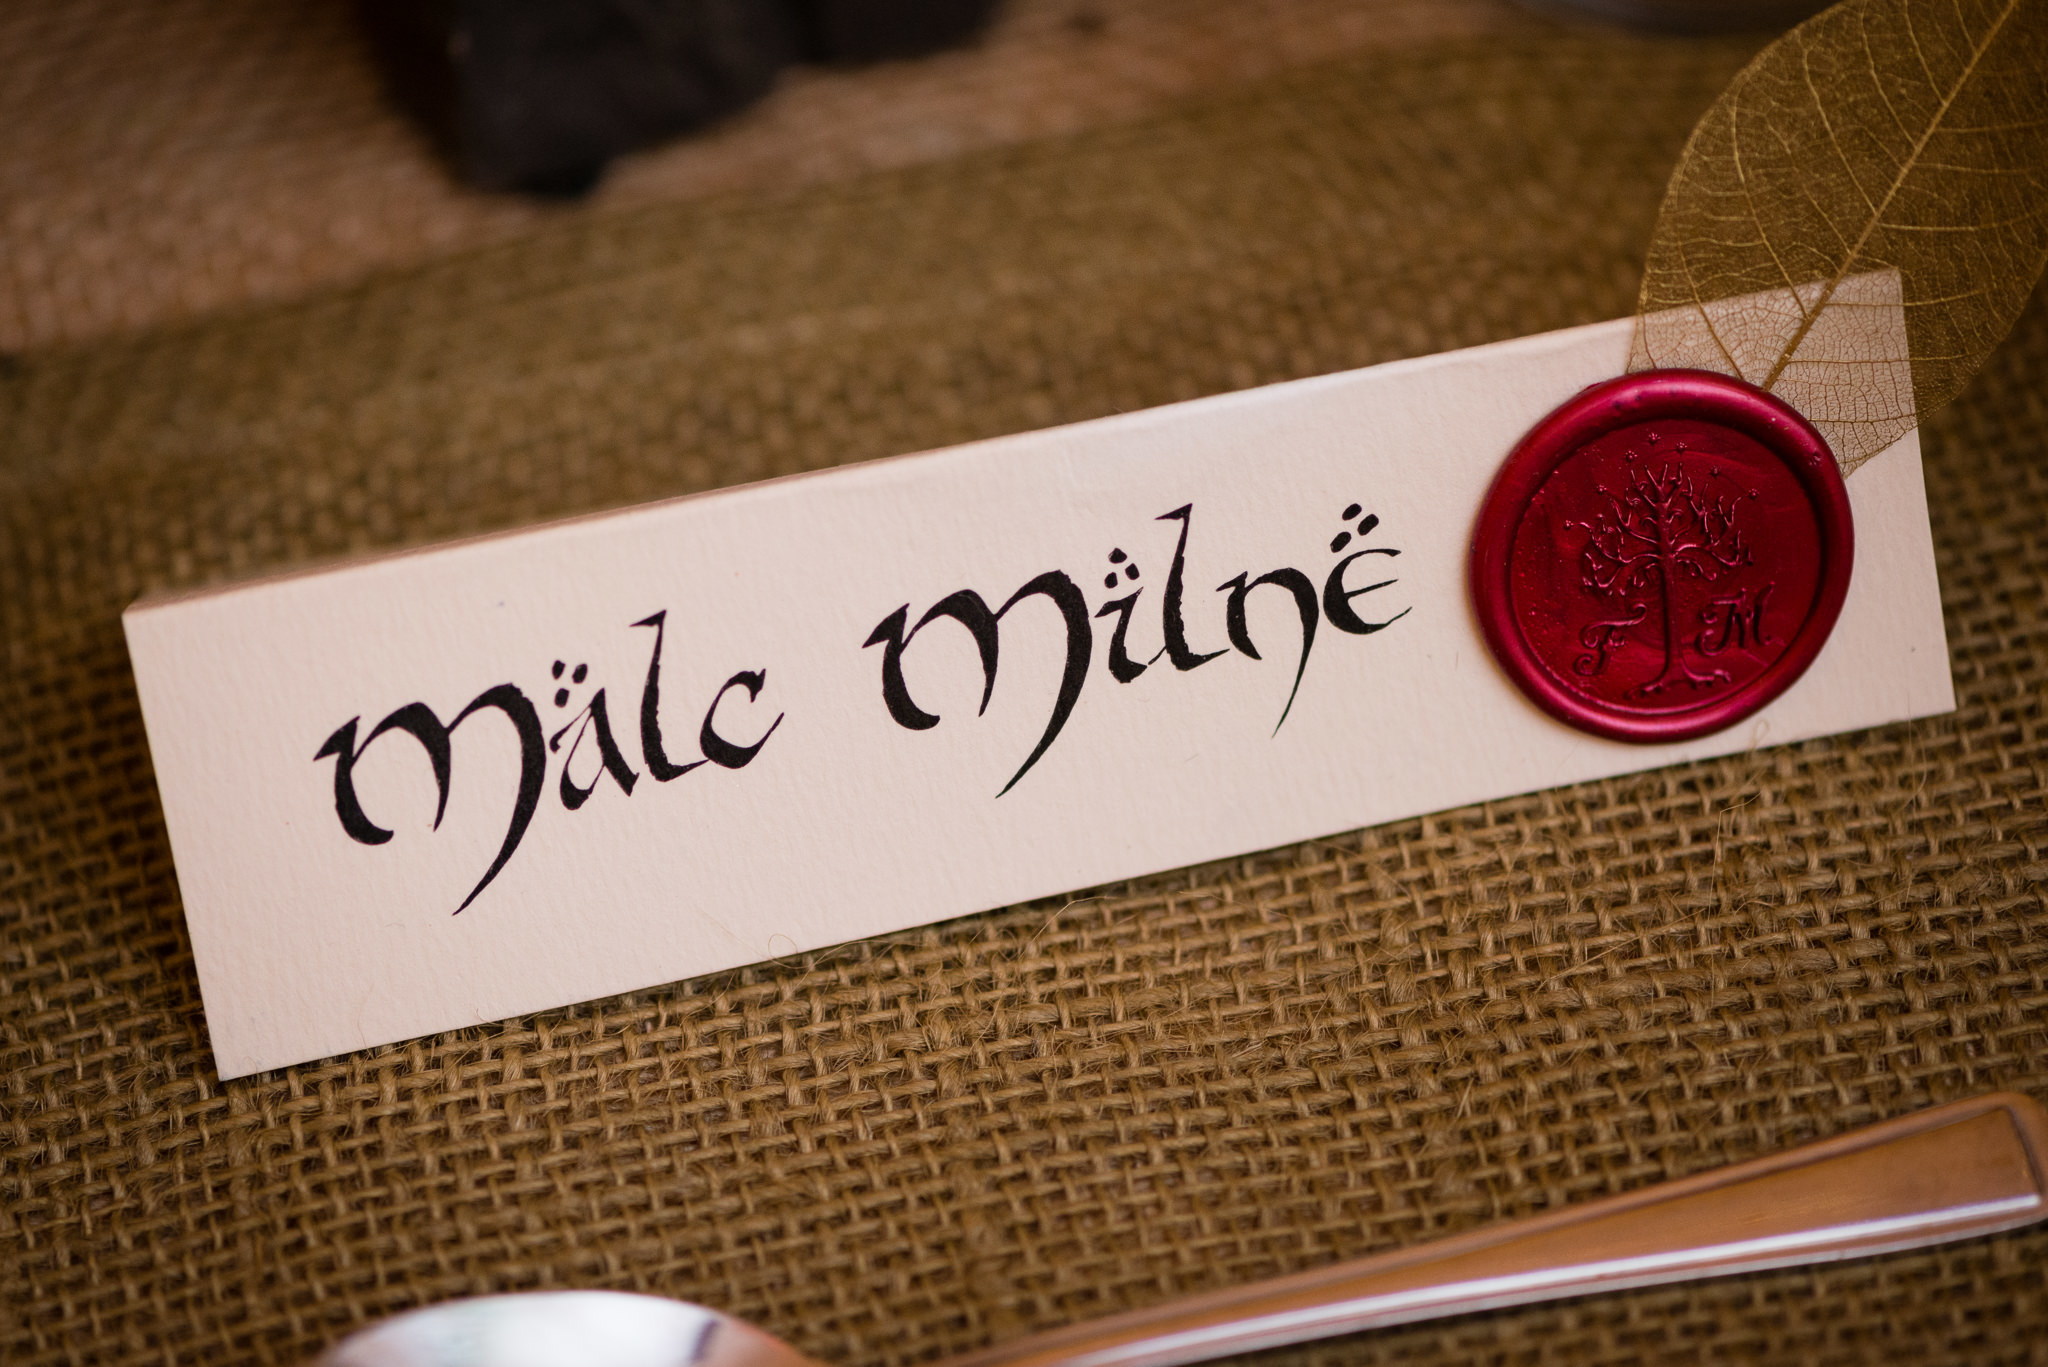 A name place setting